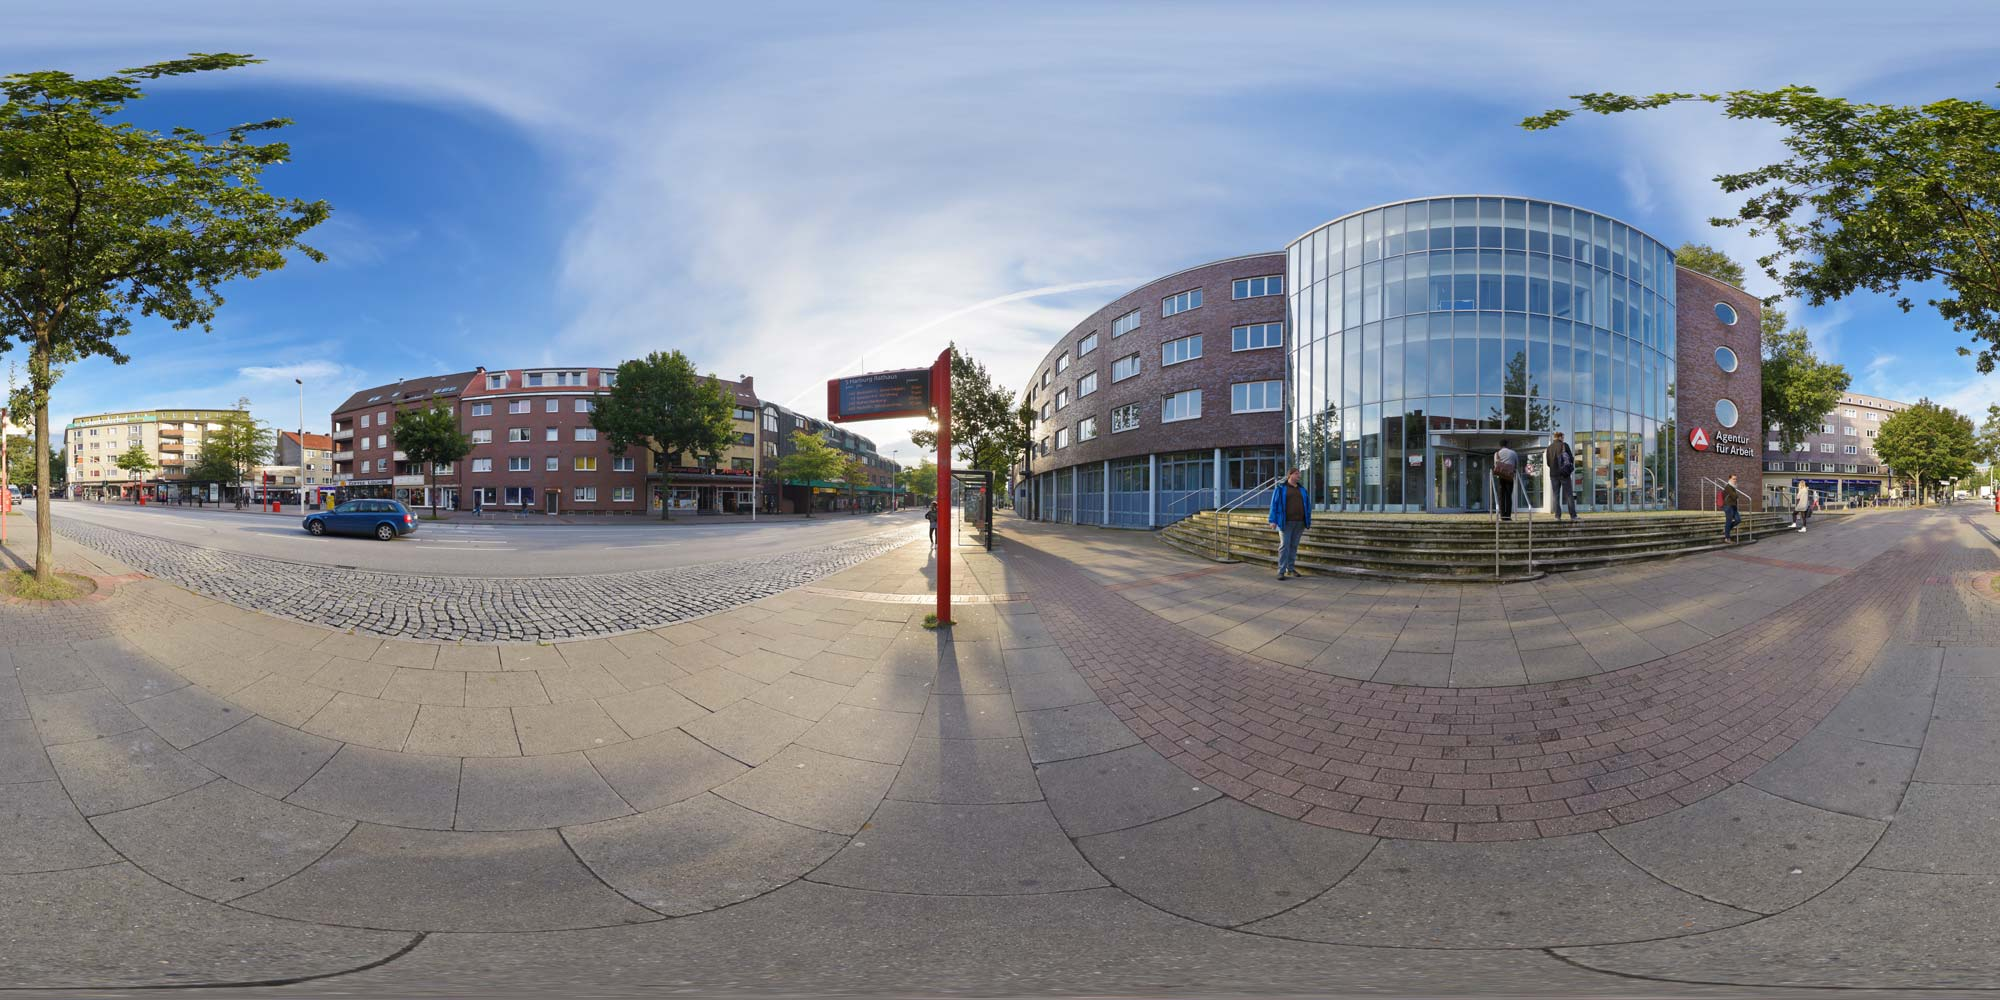 Panorama Hamburg Harburg - Harburger Ring